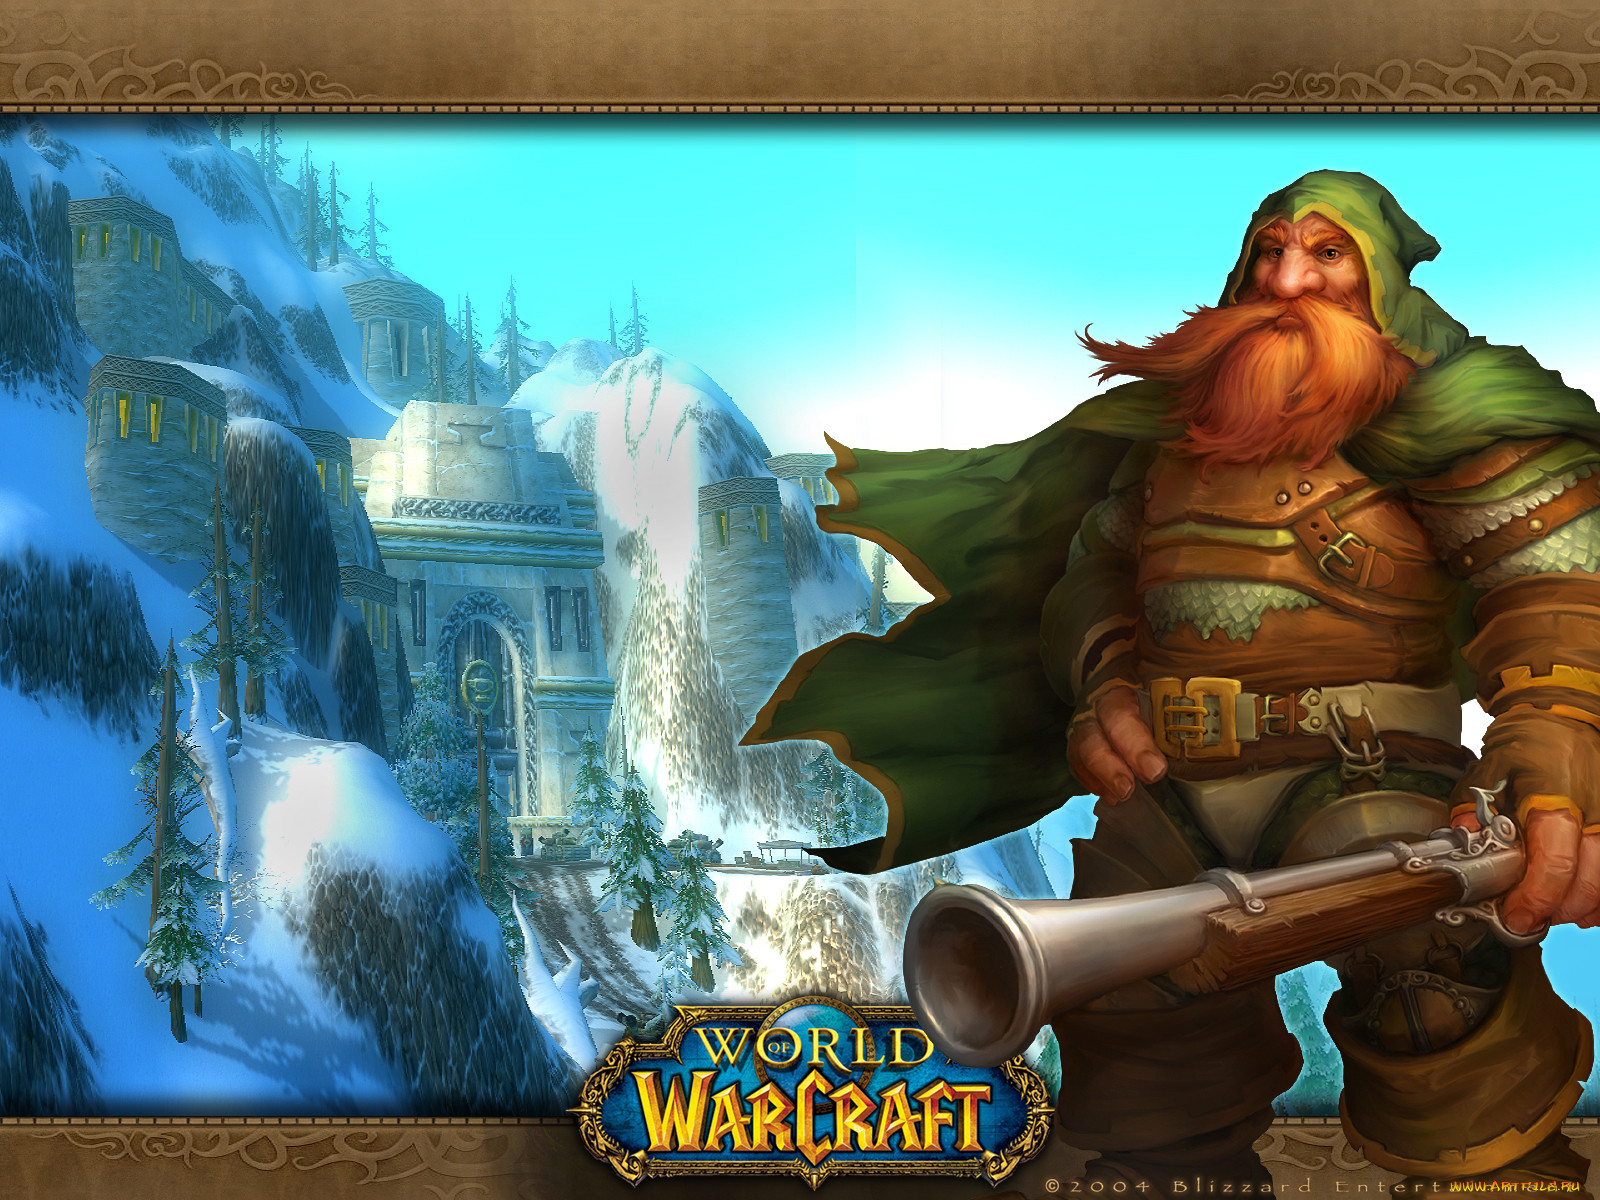 Gnome names world of warcraft adult scene